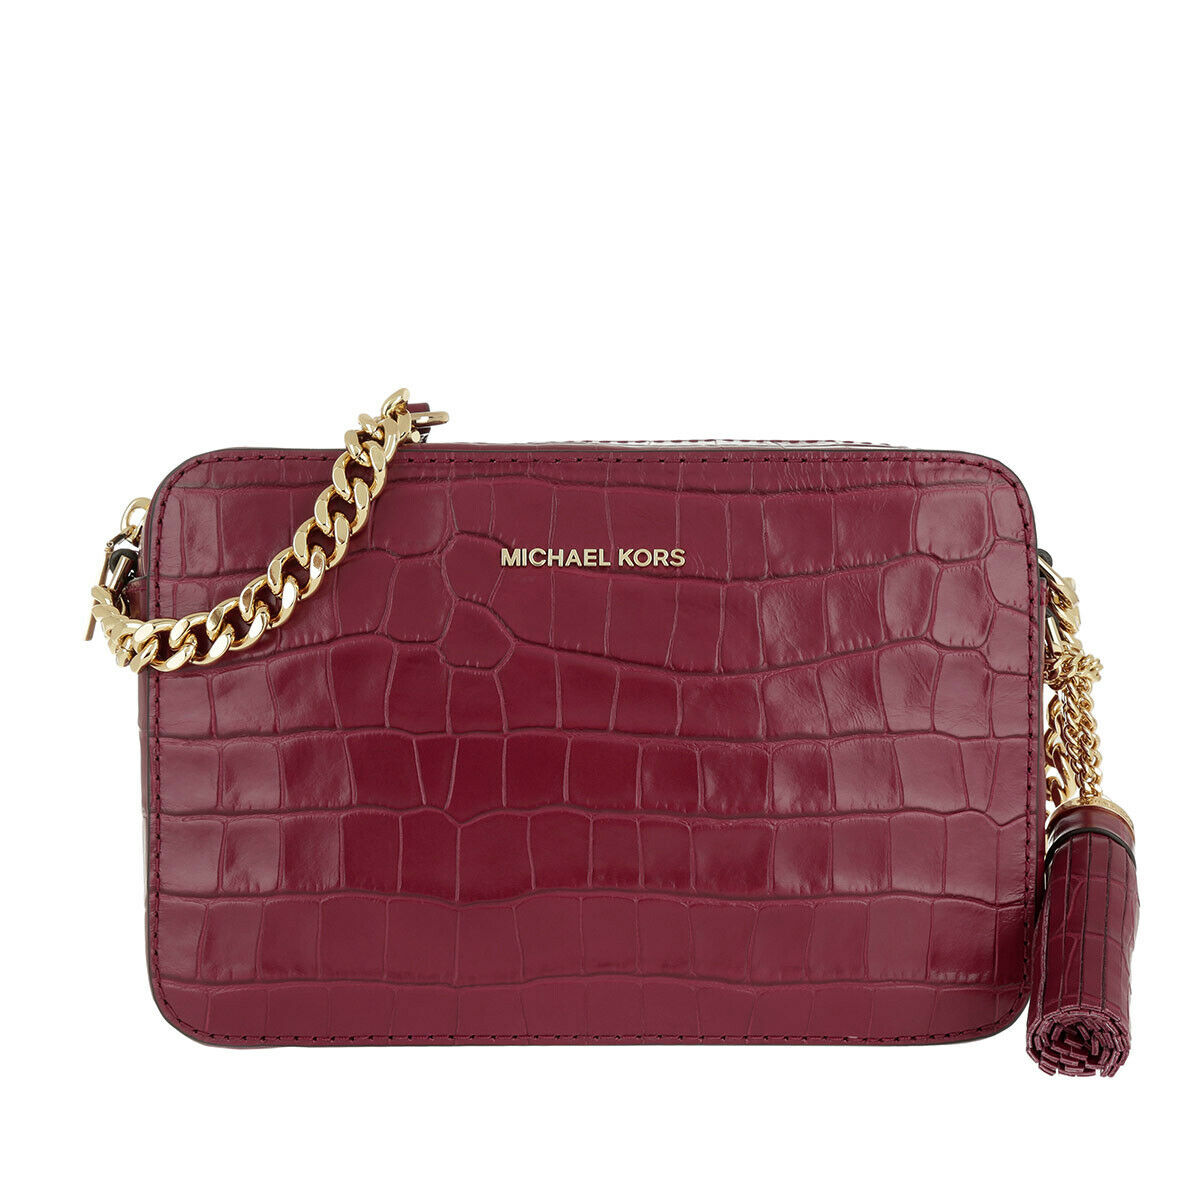 Michael Kors Ginny Croc Embossed Leather Crossbody Camera Bag Mulberry NWT $198